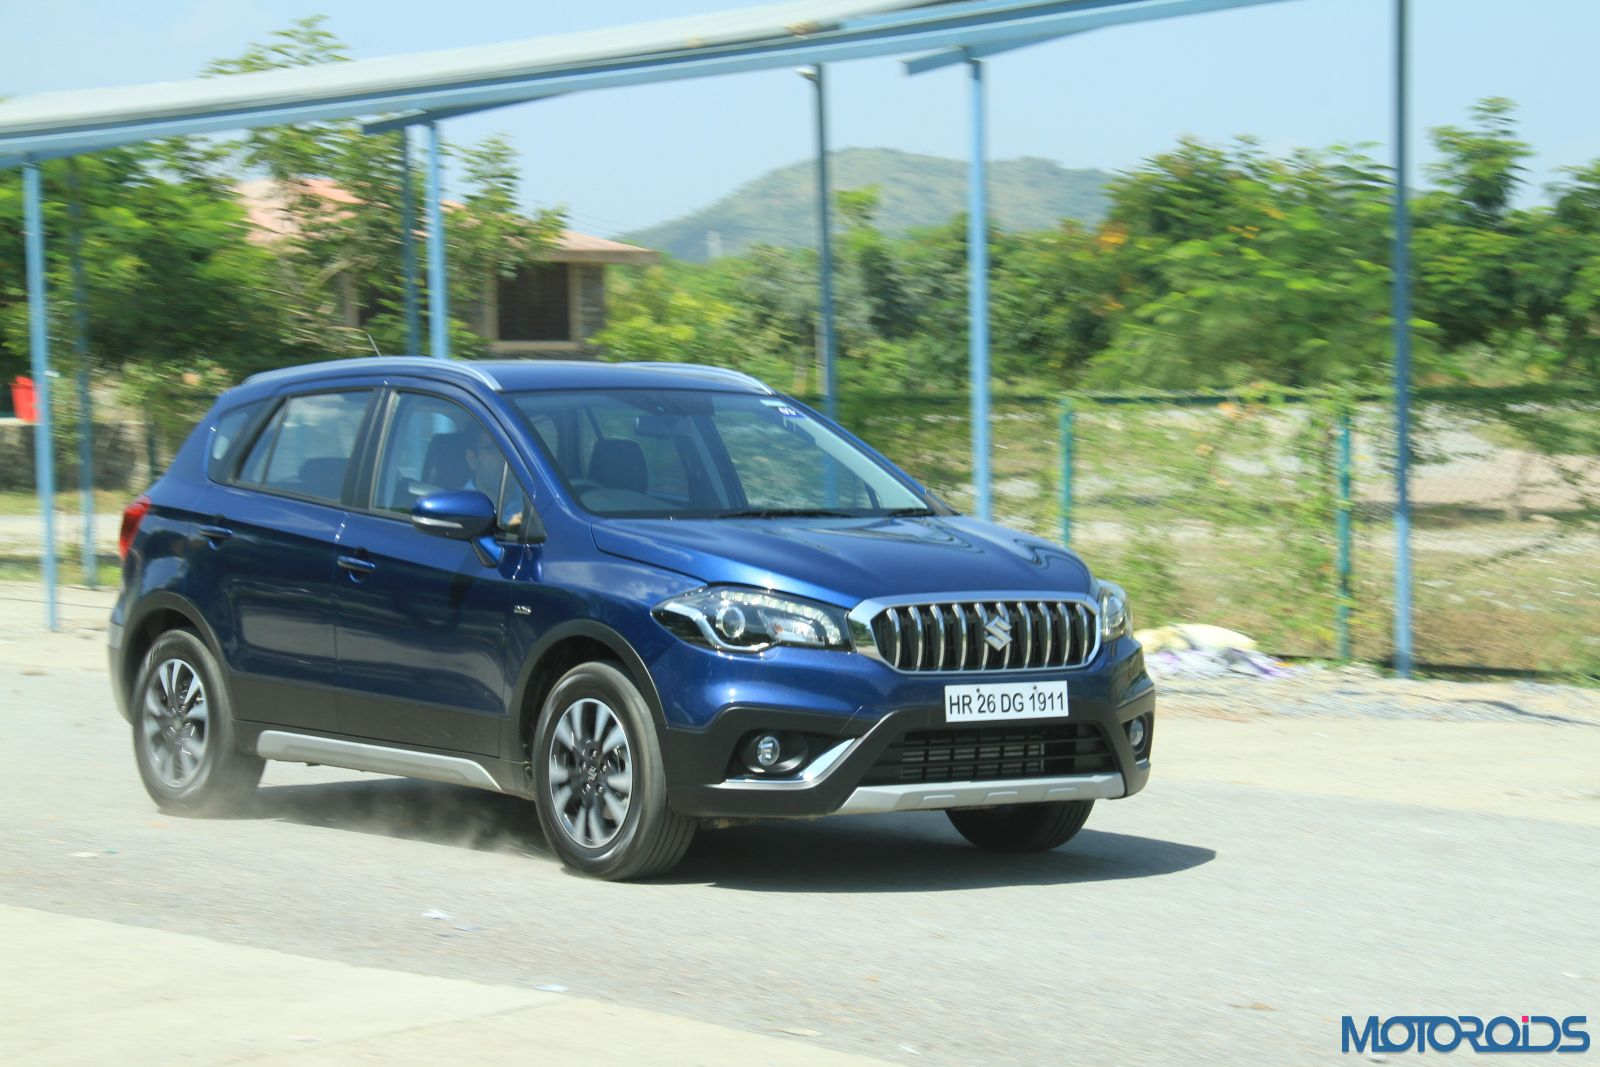 New-Maruti-Suzuki-S-Cross-Alpha-Review-action-shots1